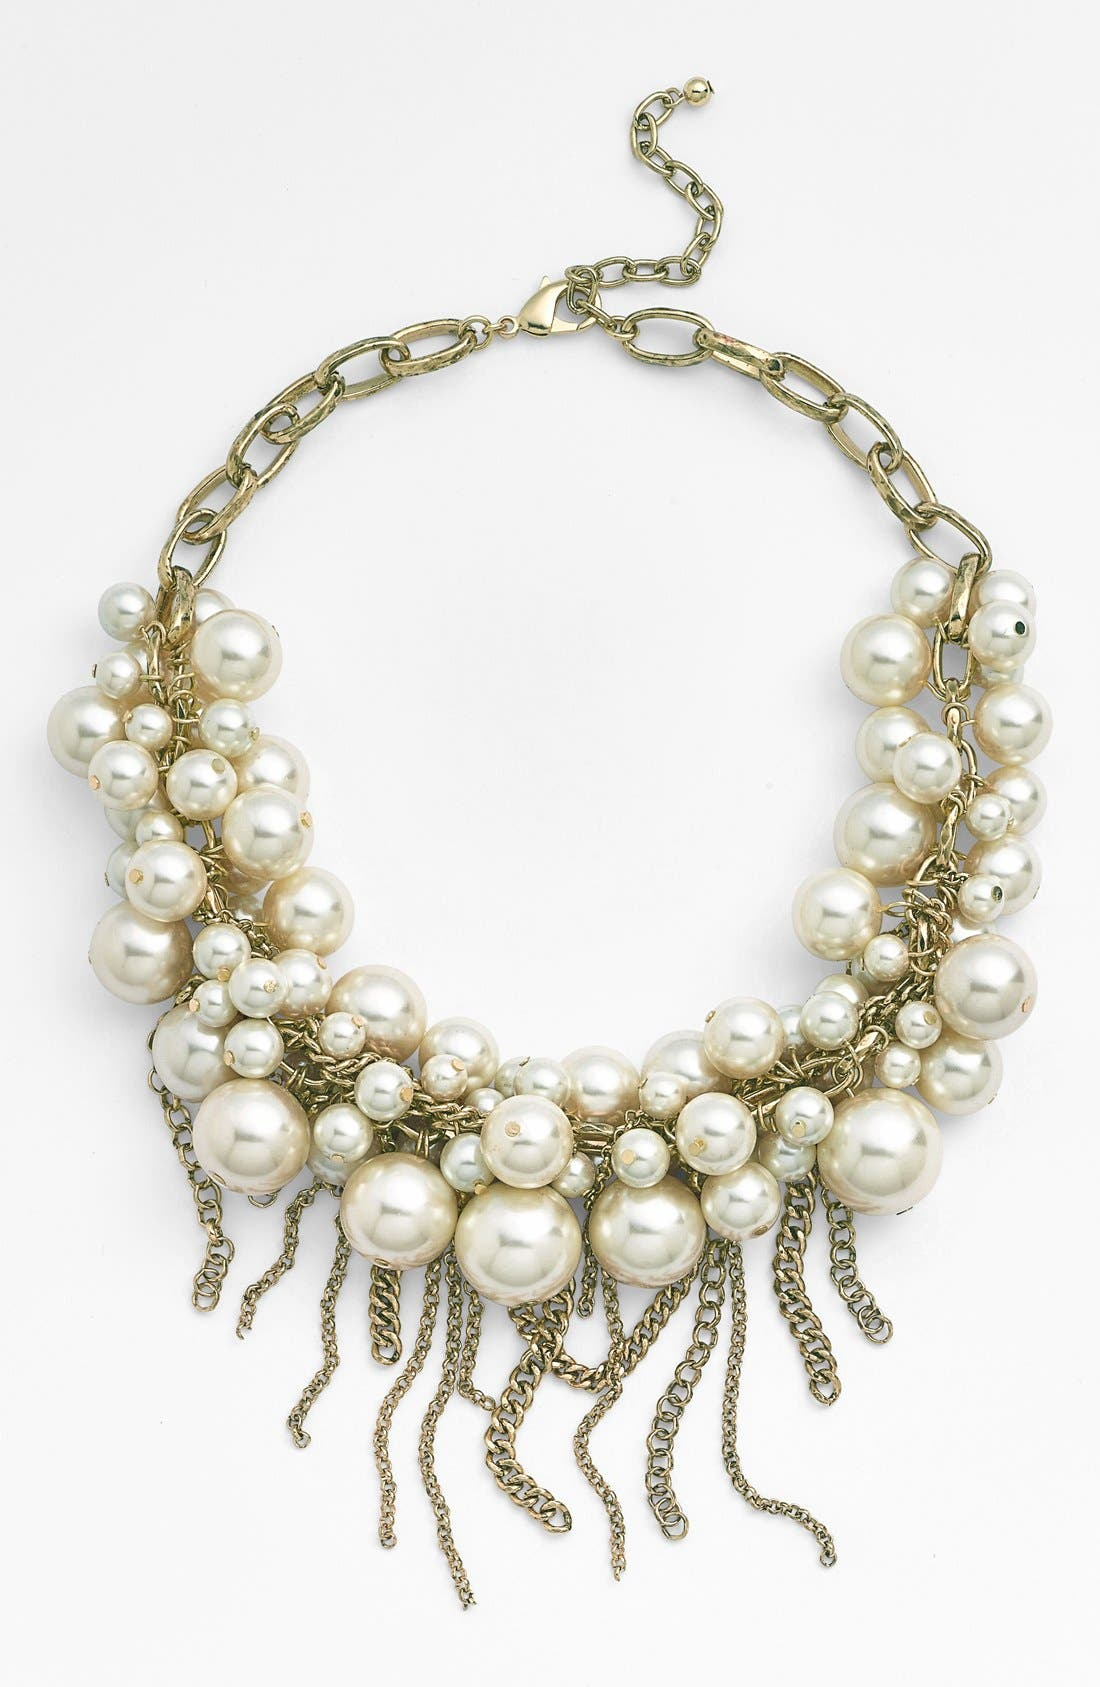 Main Image - Nordstrom Fringed Faux Pearl Statement Necklace